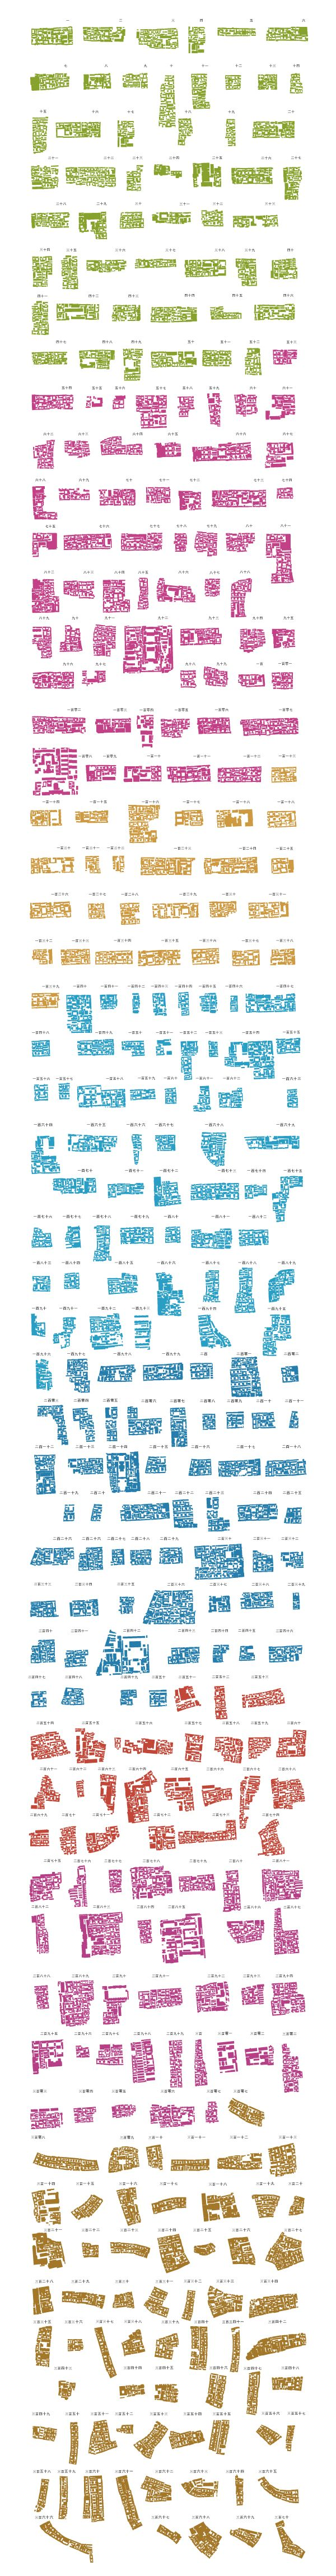 370 of the 1500 patterns of the urban fabric of Beijing's hutong from Instant Hutong's Community Catalogue 2007